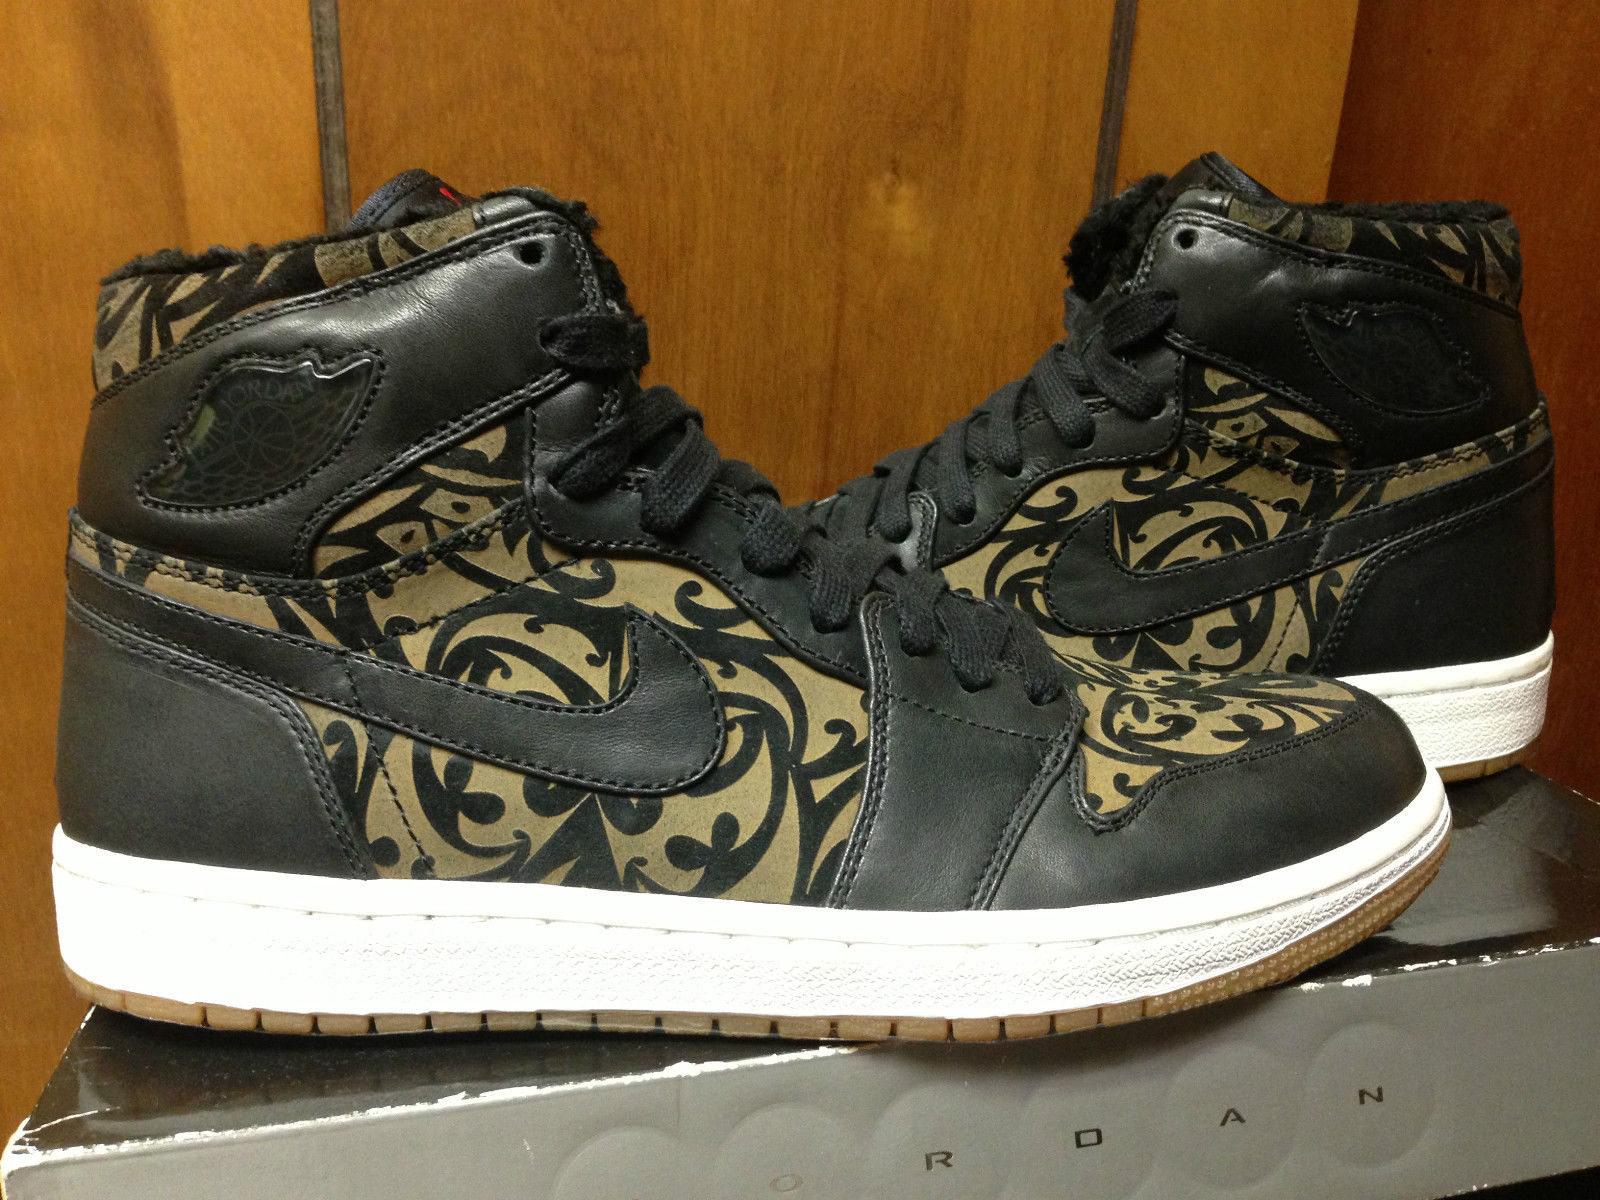 Velour Lined Jordan 1 Laser Samples